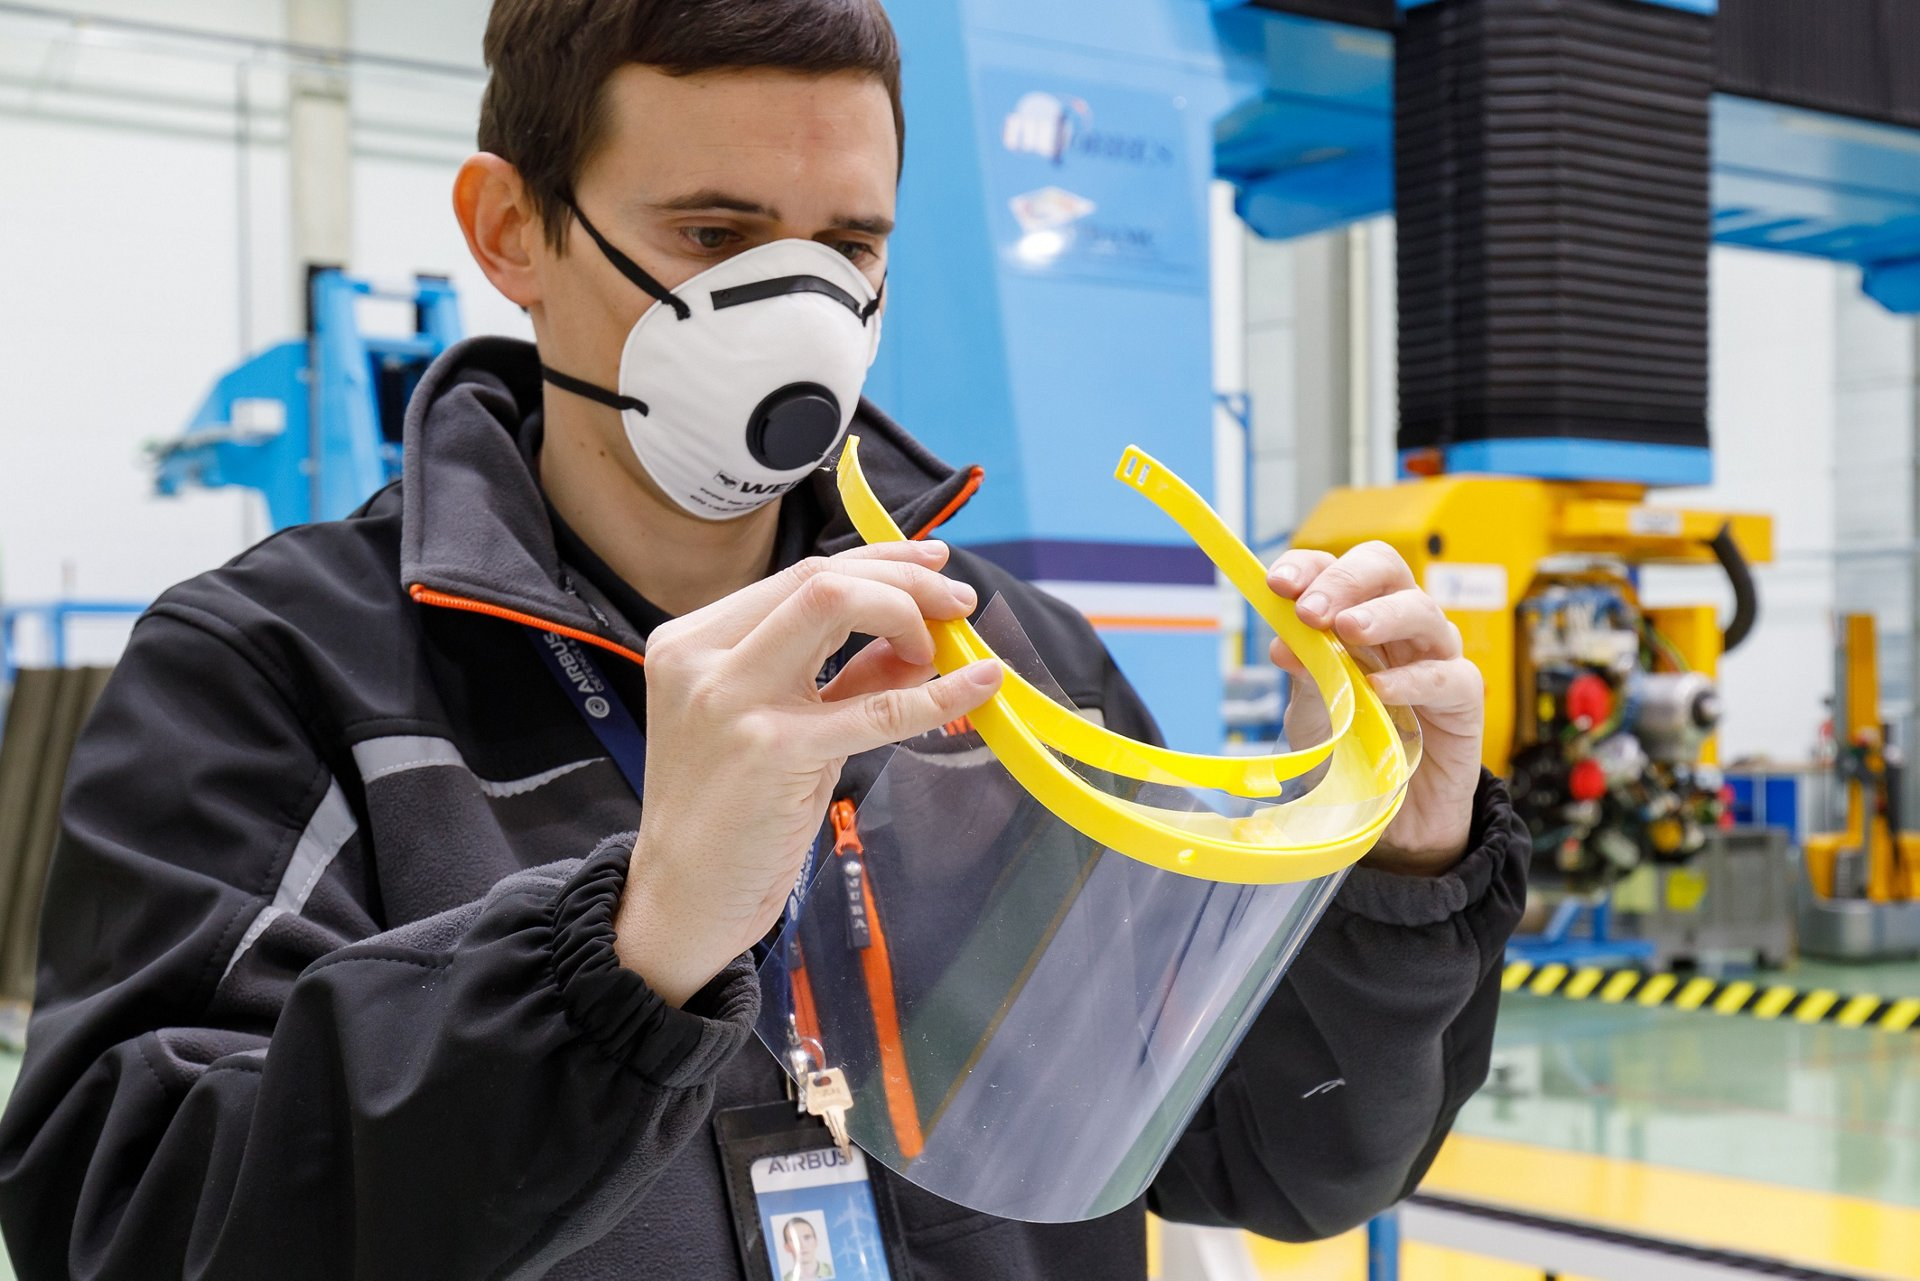 Supporting the fight against COVID-19, employees from Airbus sites in Spain have made thousands of visor frames for protective face masks using 3D printing technology